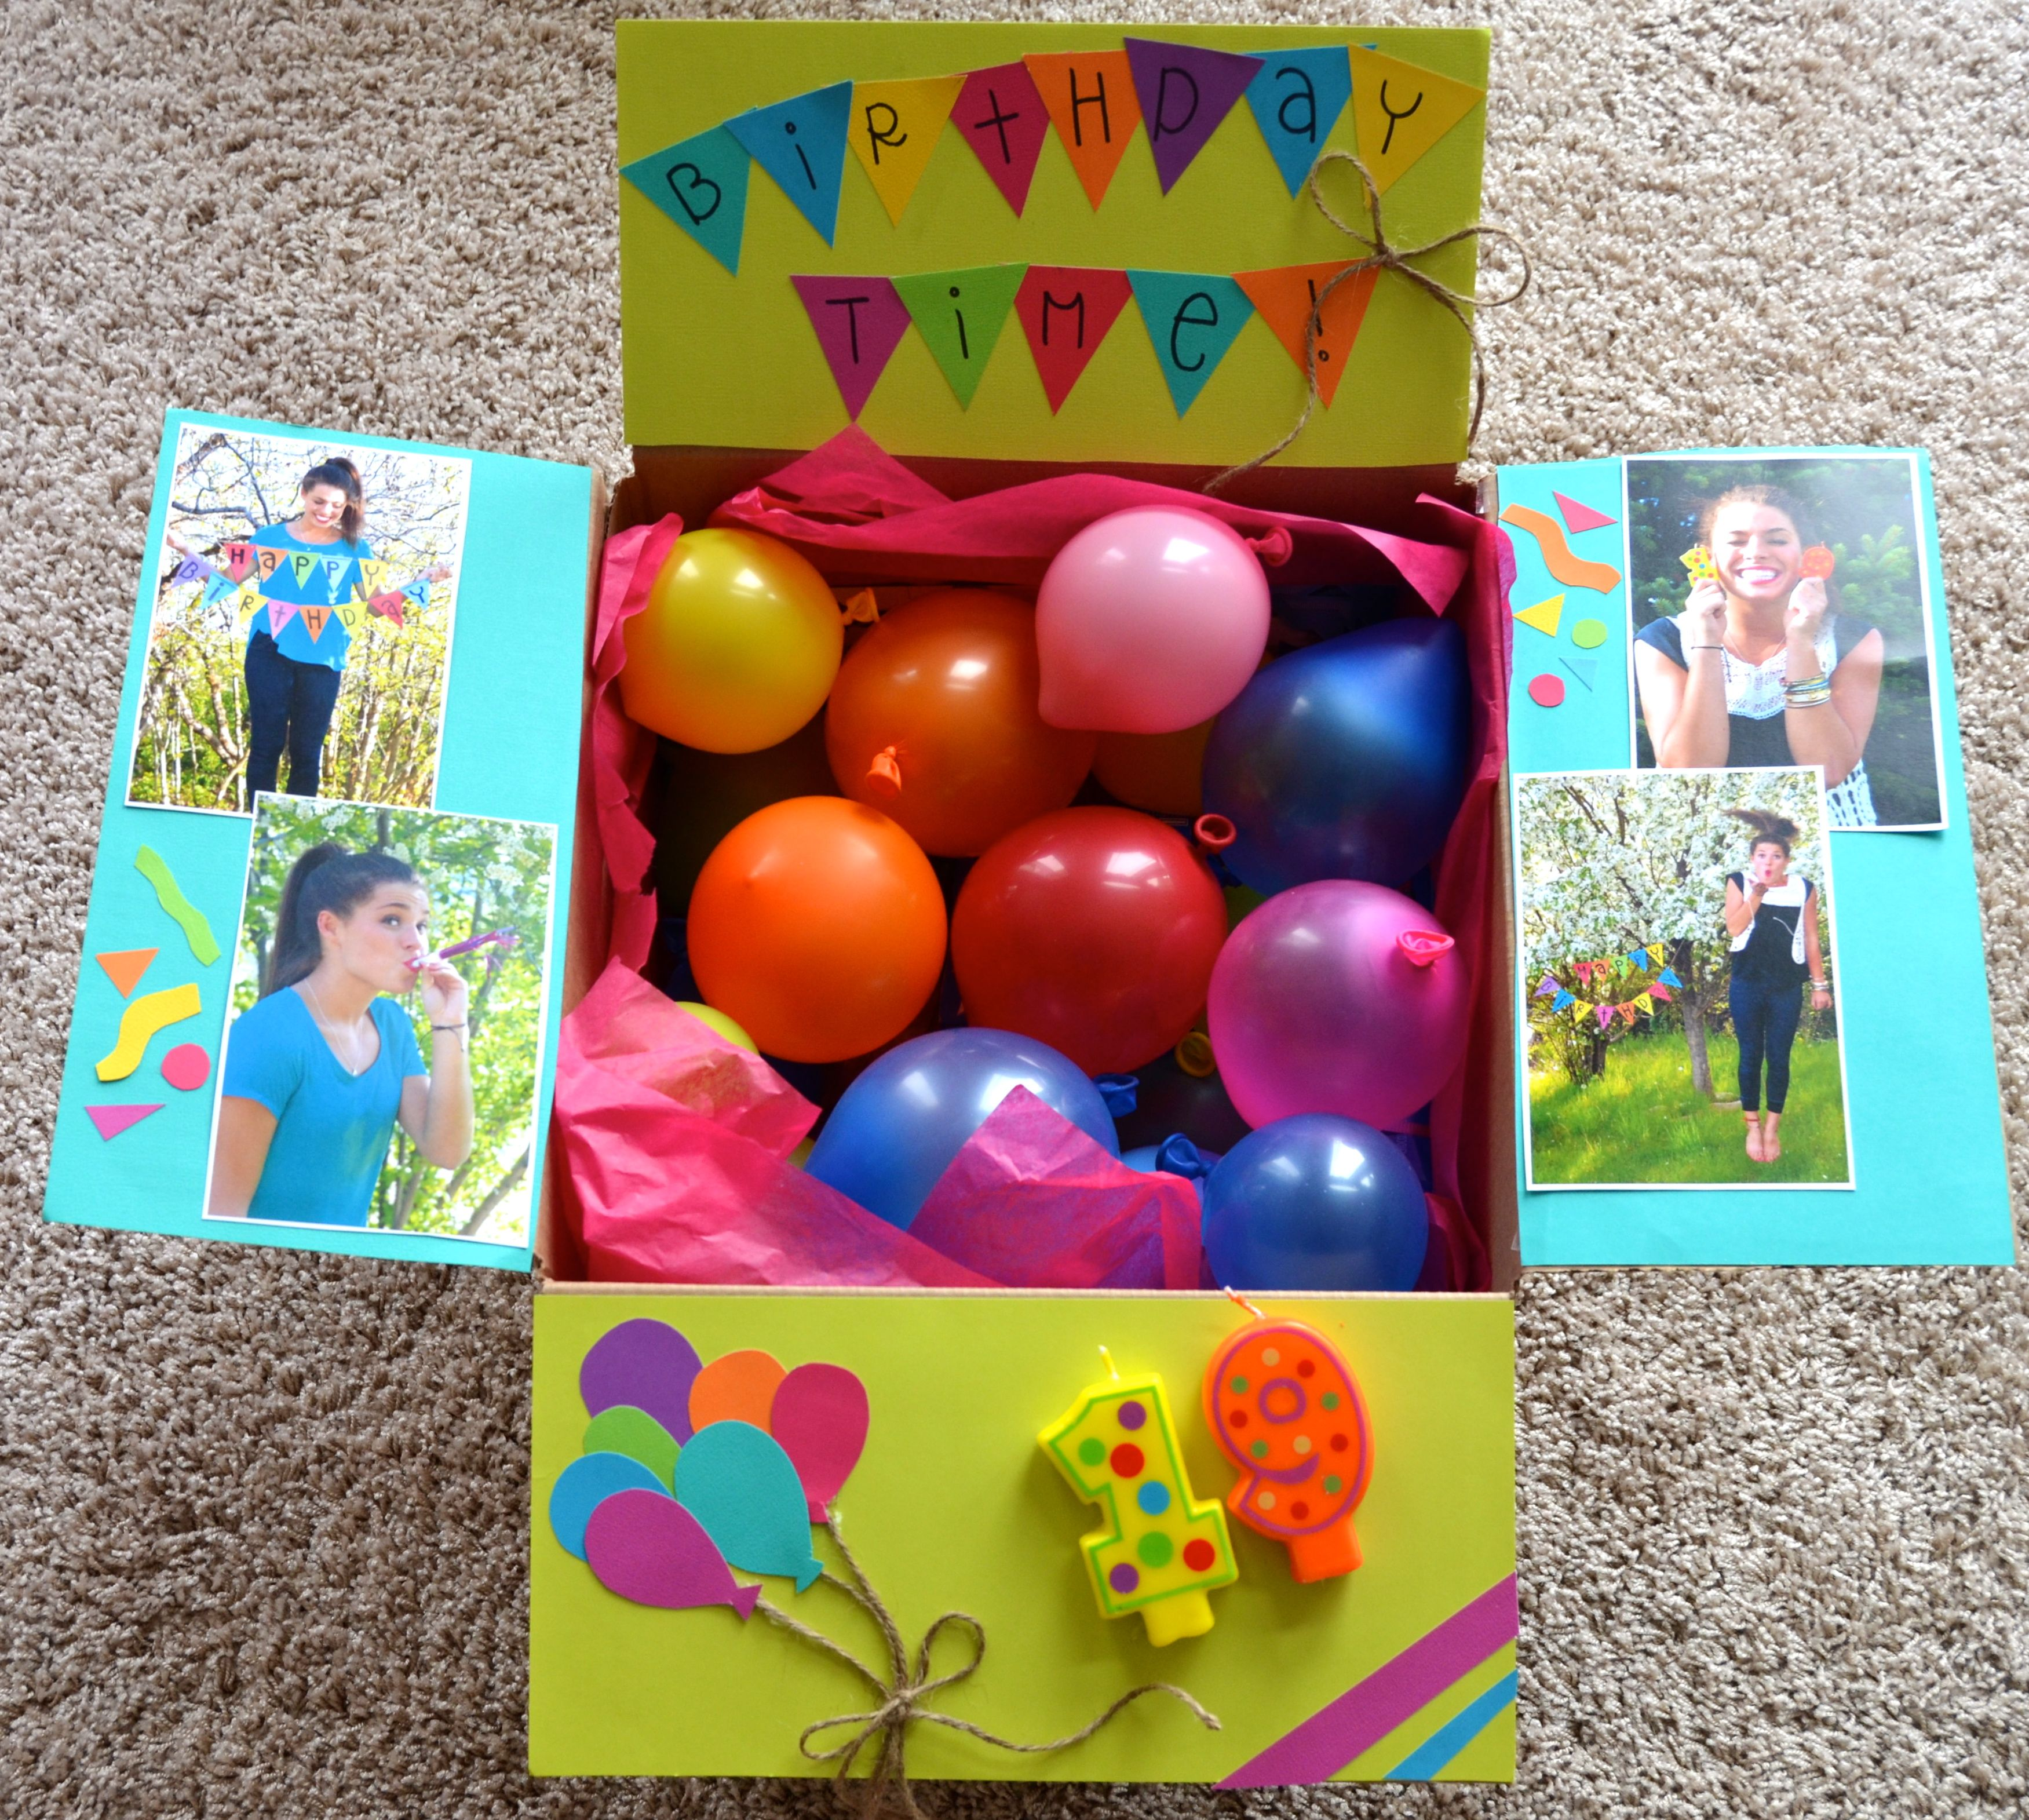 Missionary Mail Birthday Package Idea Blew Up Little Baloons To Make It A Party In The Box